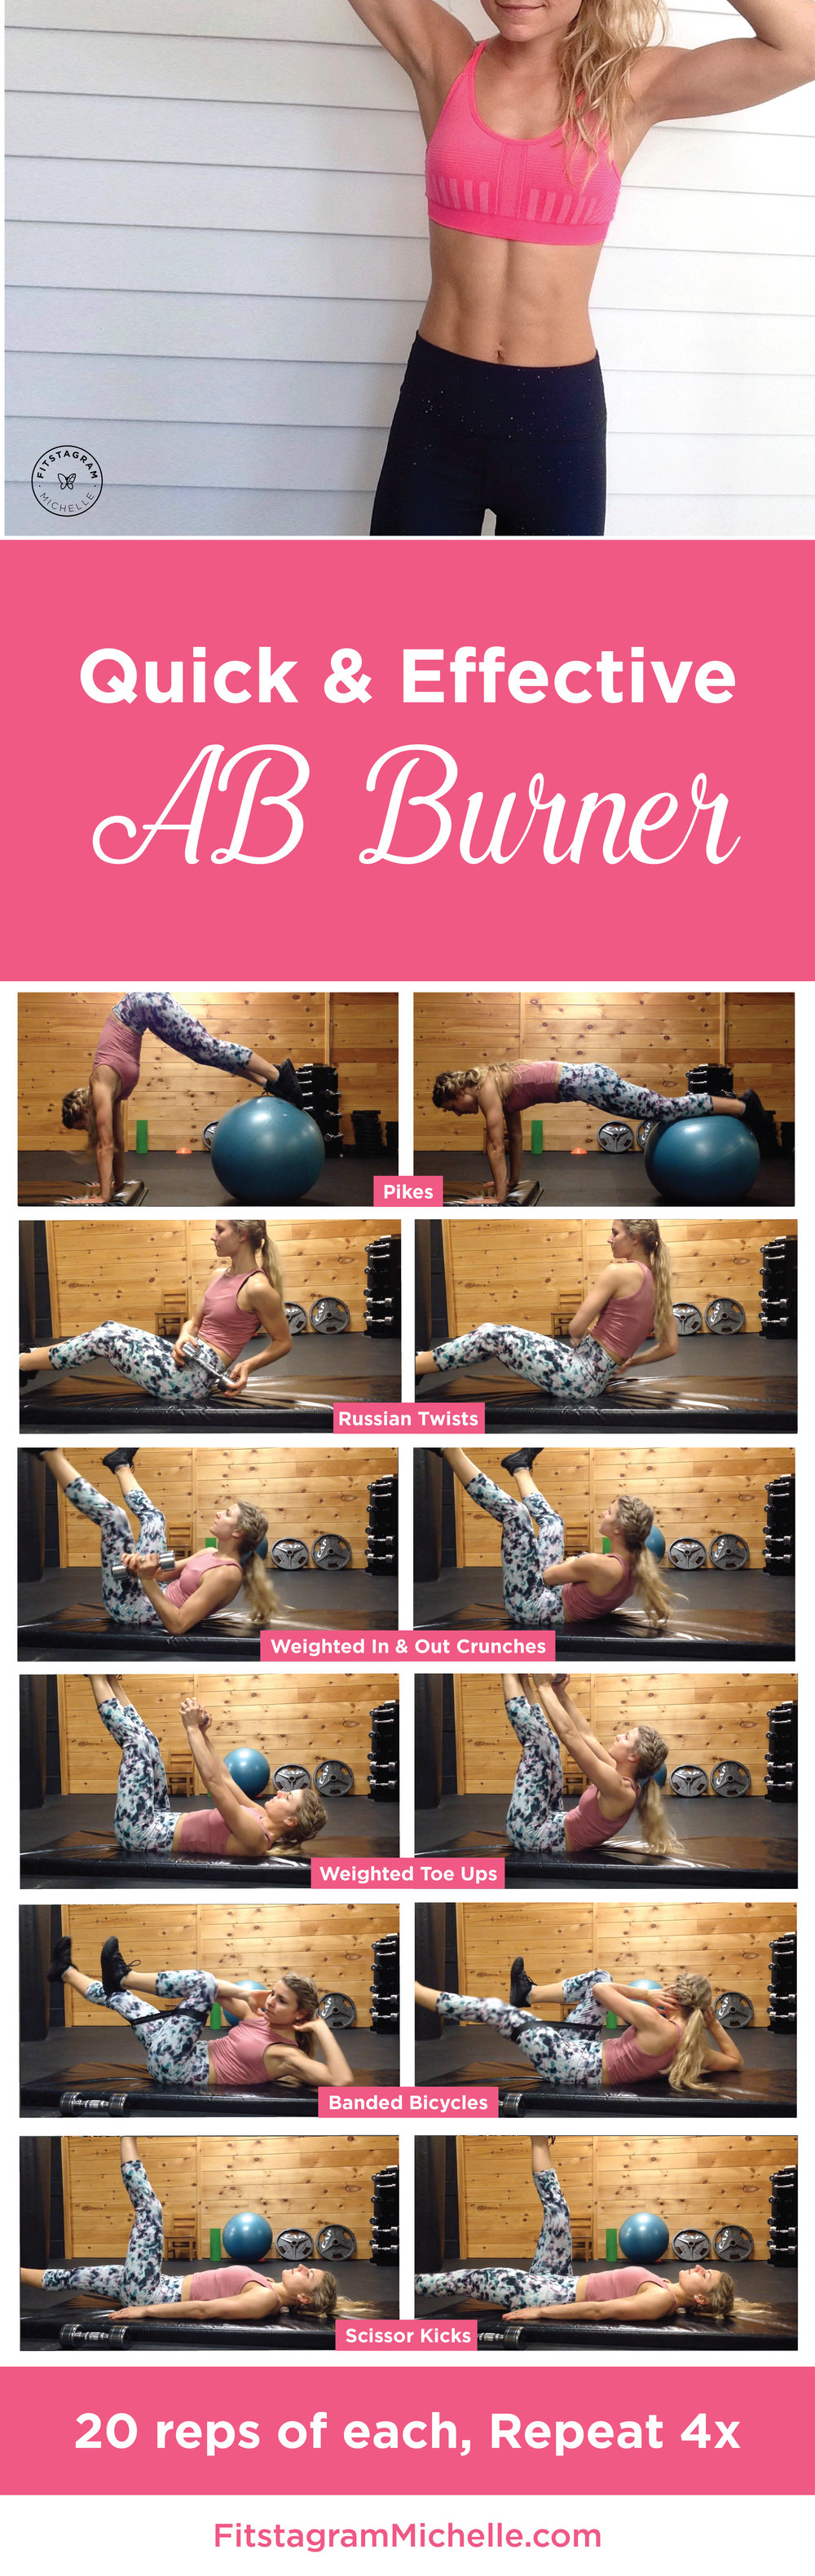 Quick & Effective Ab Burner Workout by @FitstagramMichelle. Get tight and lean abs with these 6 simple moves.